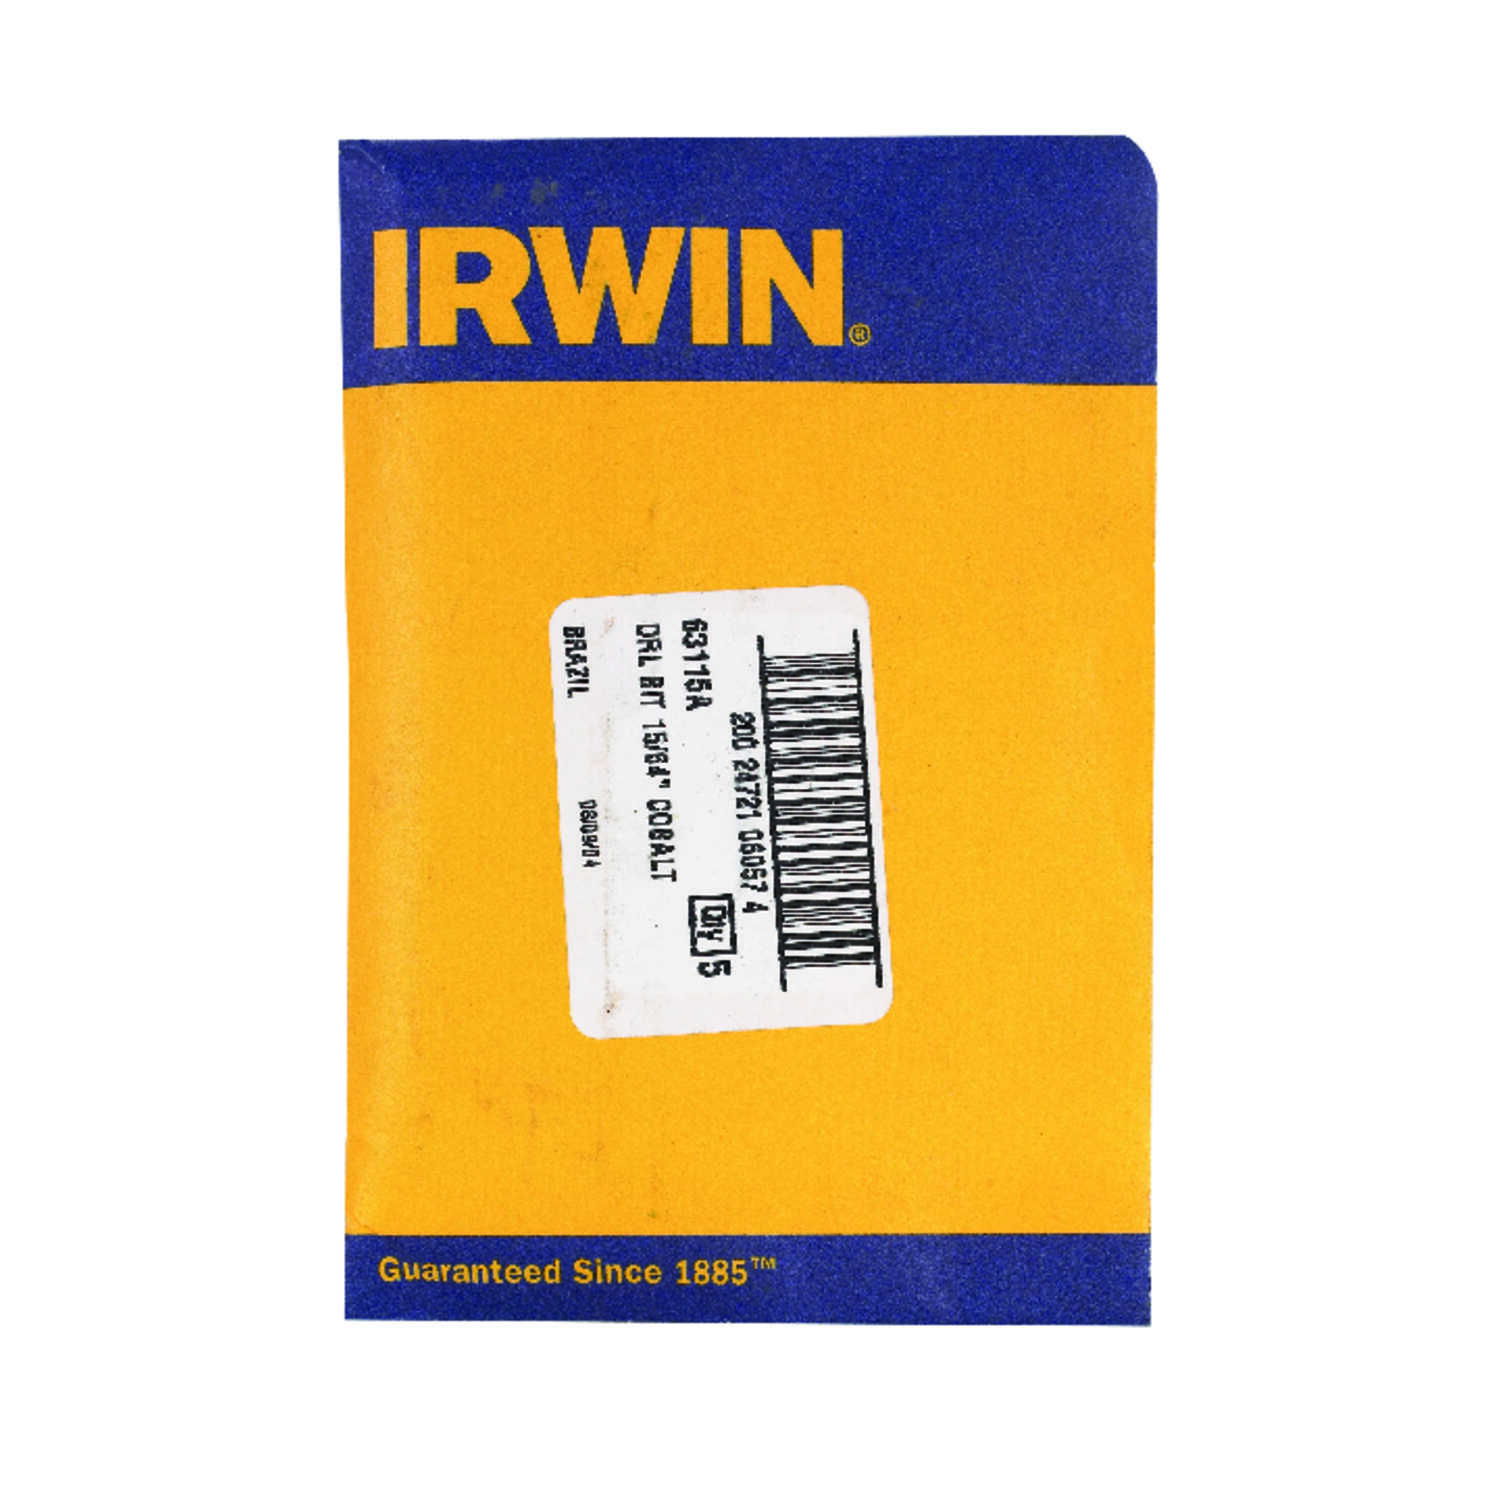 Irwin  Cobalt  15/64 in. Dia. x 3-7/8 in. L High Speed Steel  Drill Bit  Straight Shank  12 pc.